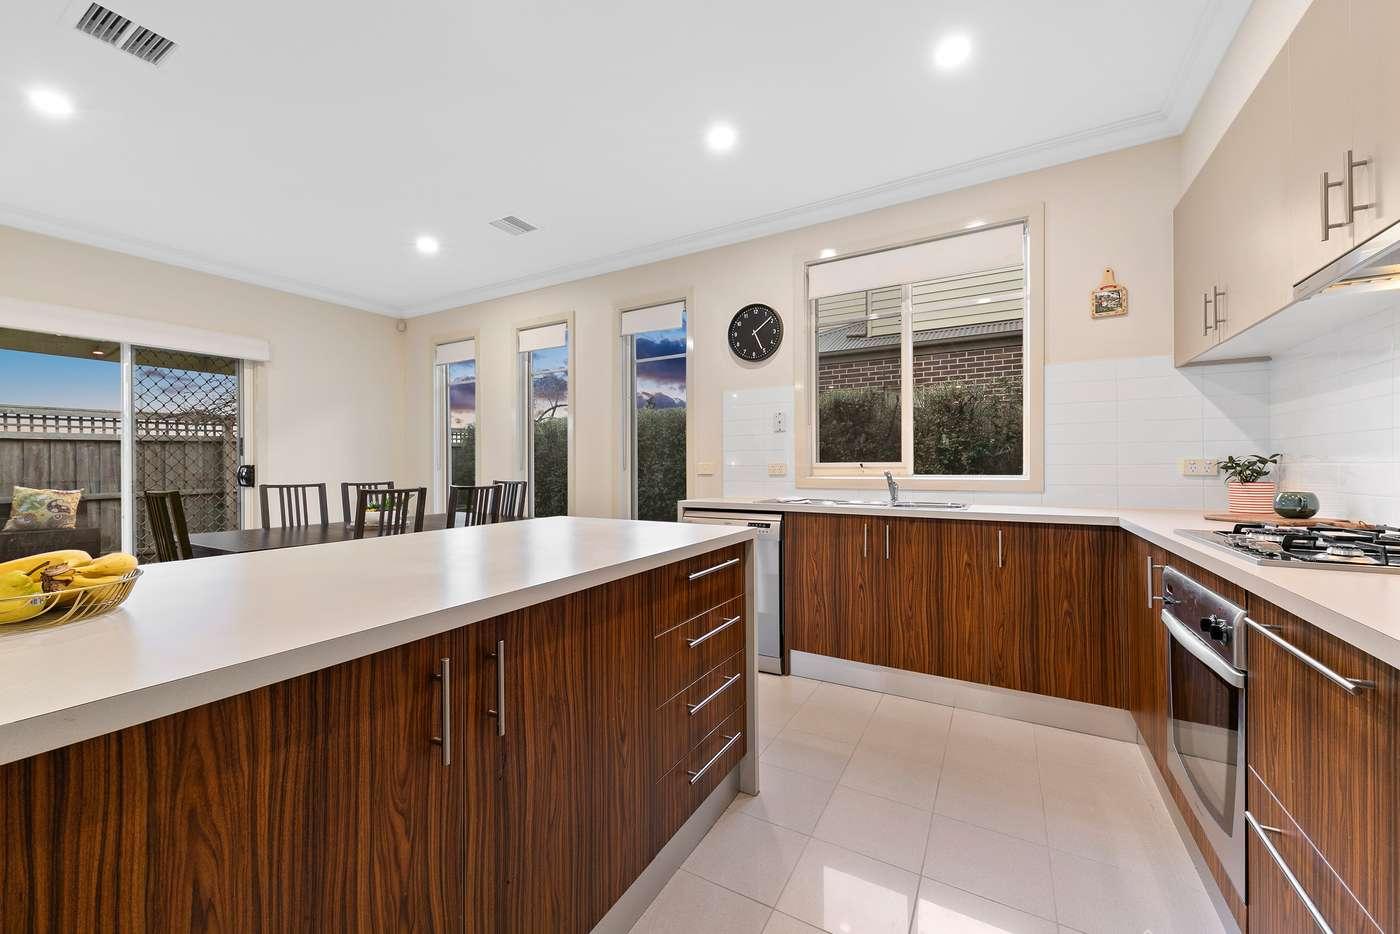 Fifth view of Homely house listing, 1 Tilbavale Close, Hallam VIC 3803